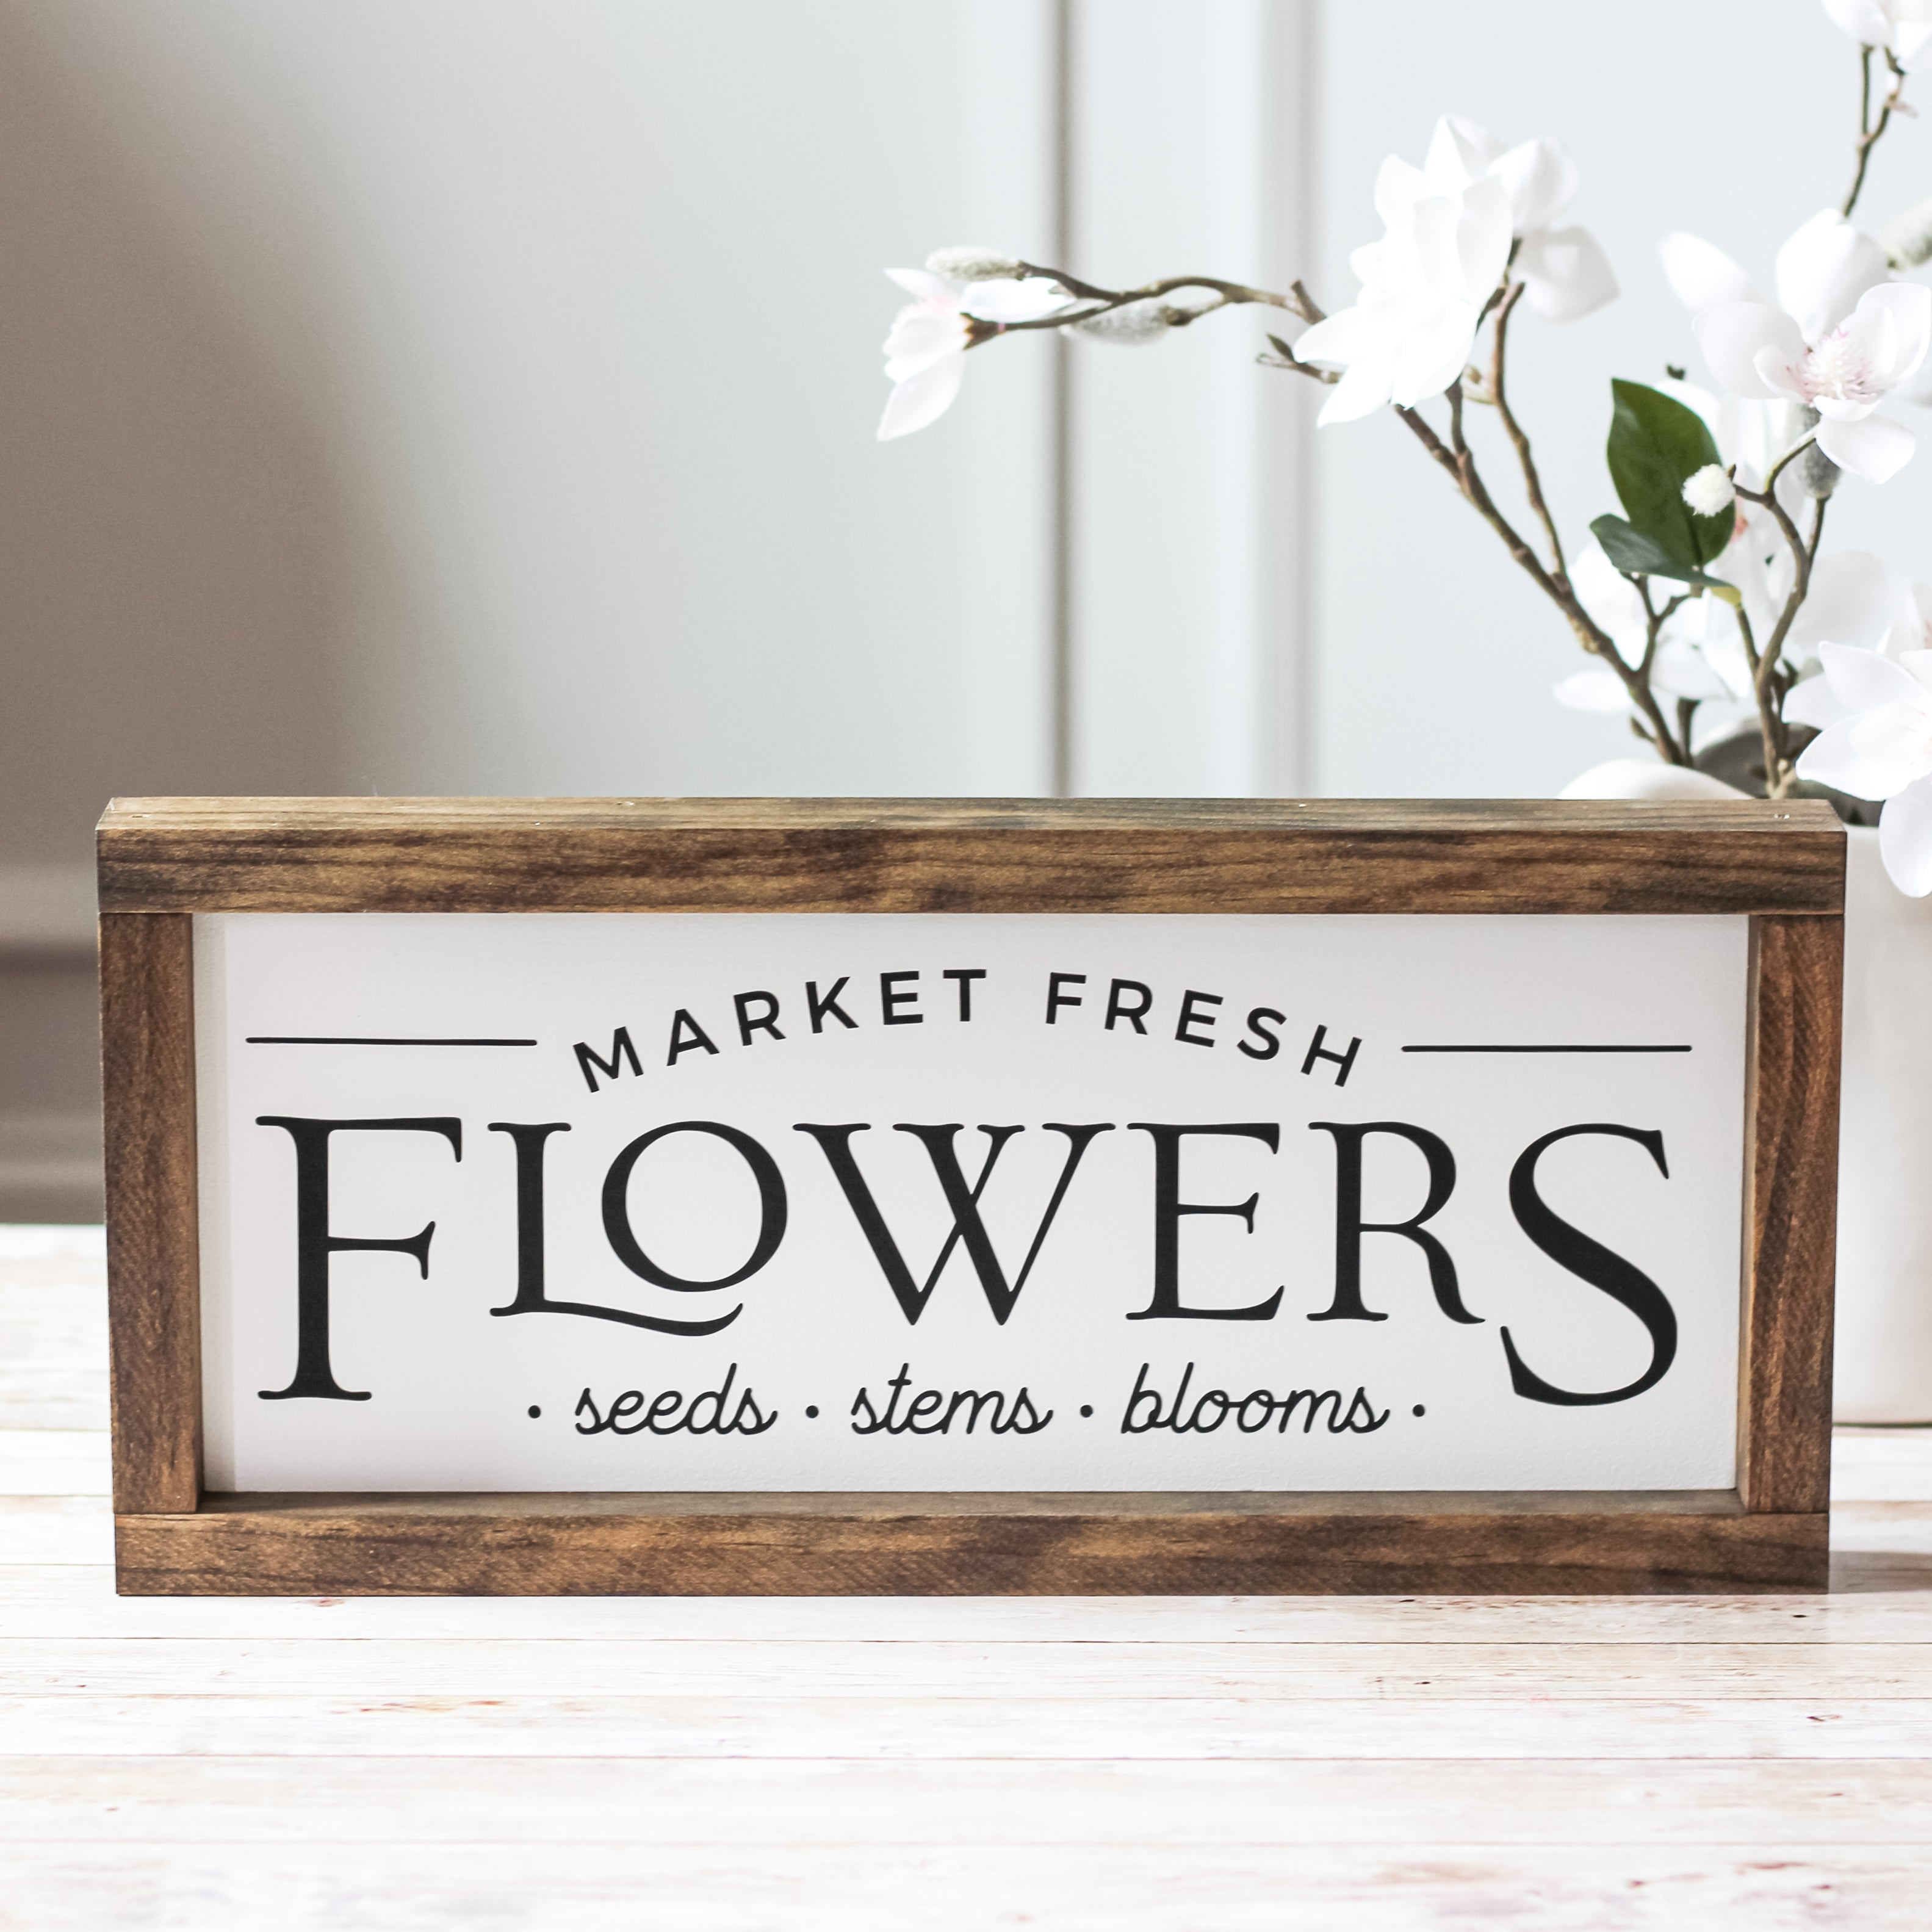 Market Fresh Flowers Seeds Stems Blooms Wall Sign Rustic Wall Decor Jarful House